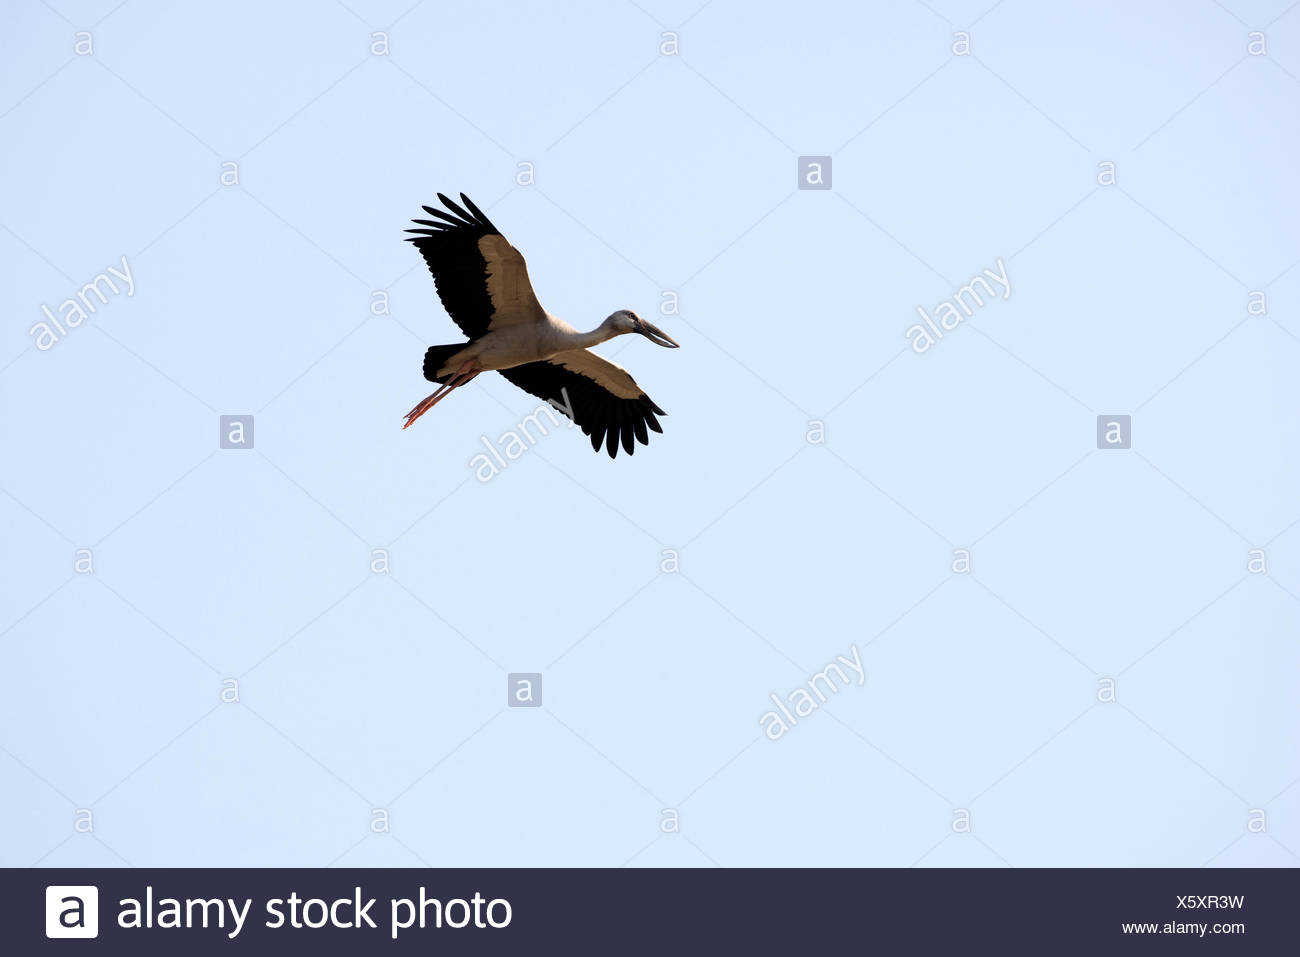 Asian openbill, flying, Thailand, Bec, ouvert indien, bird, wader, anastomus oscitans, flight - Stock Image